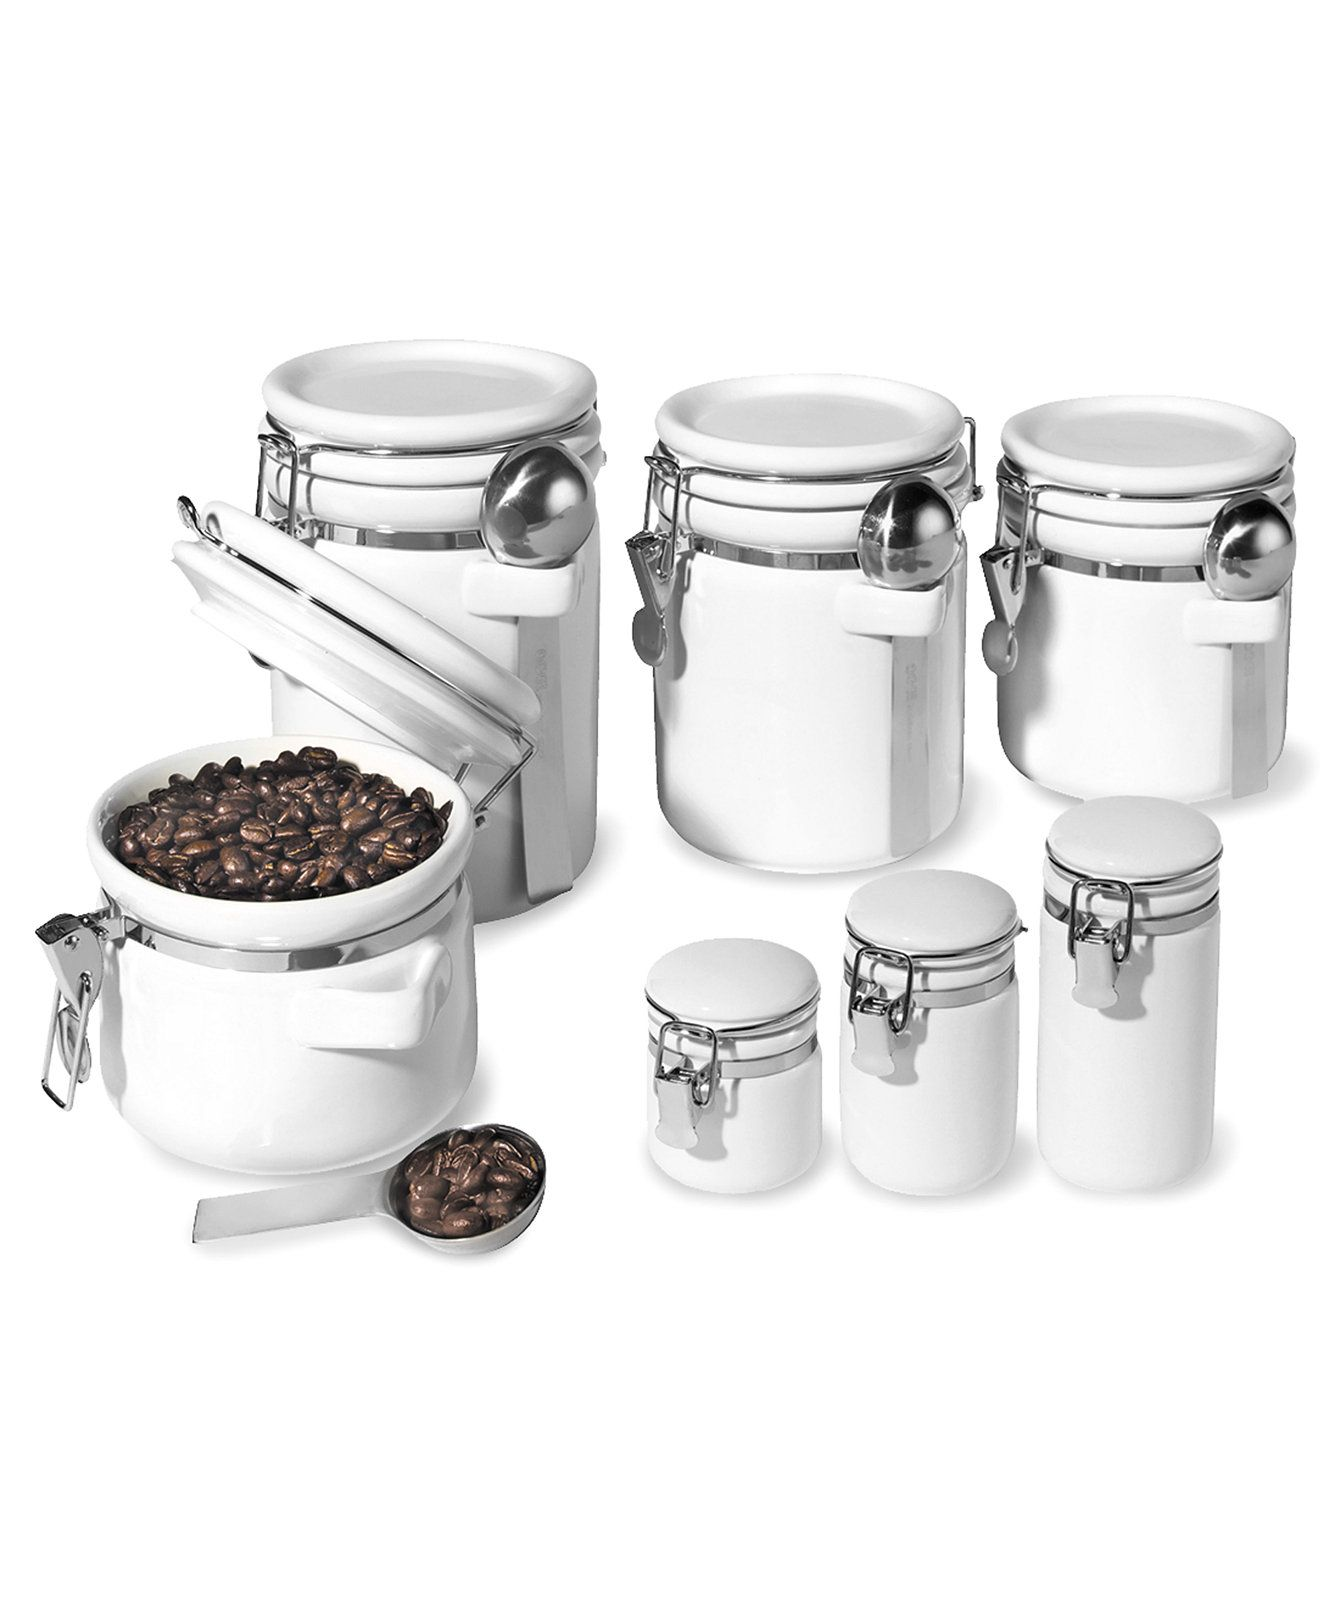 Oggi Food Storage Containers, 7 Piece Set Ceramic Canisters ...